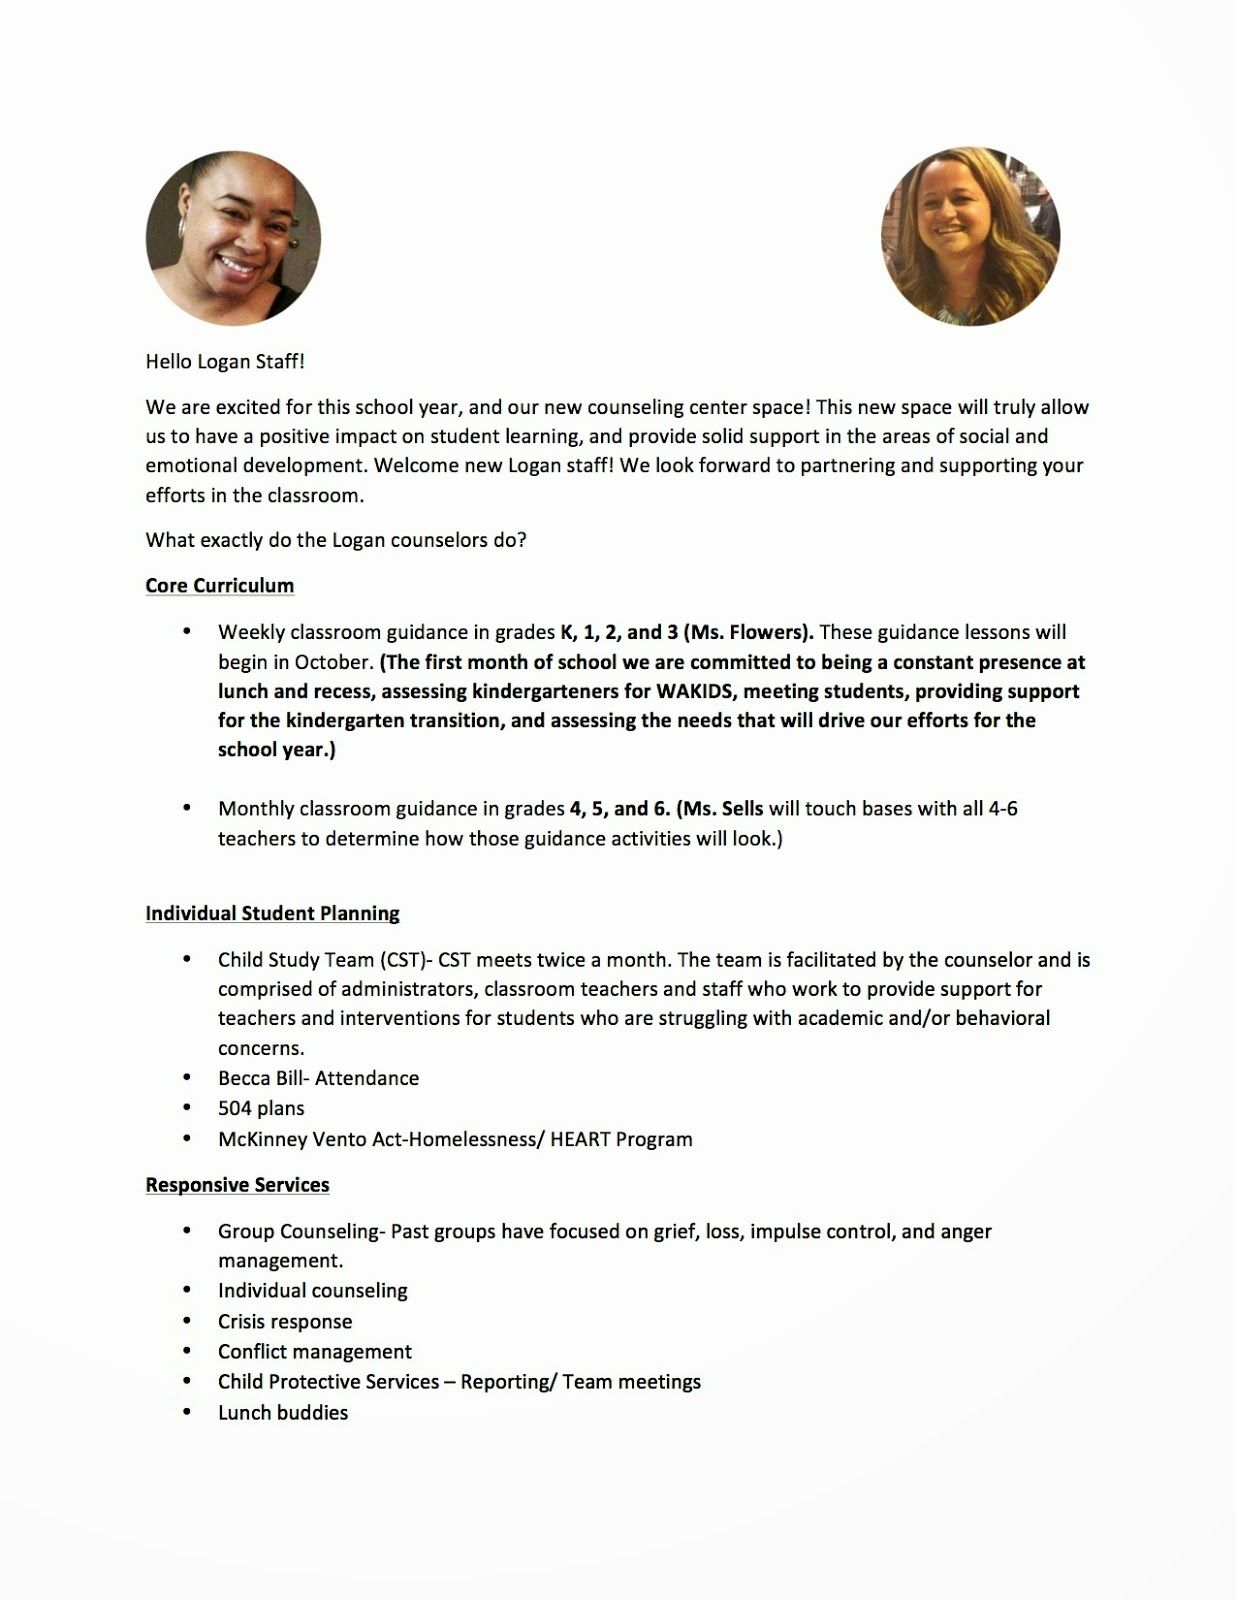 The Creative School Counselors A Letter To The Staff